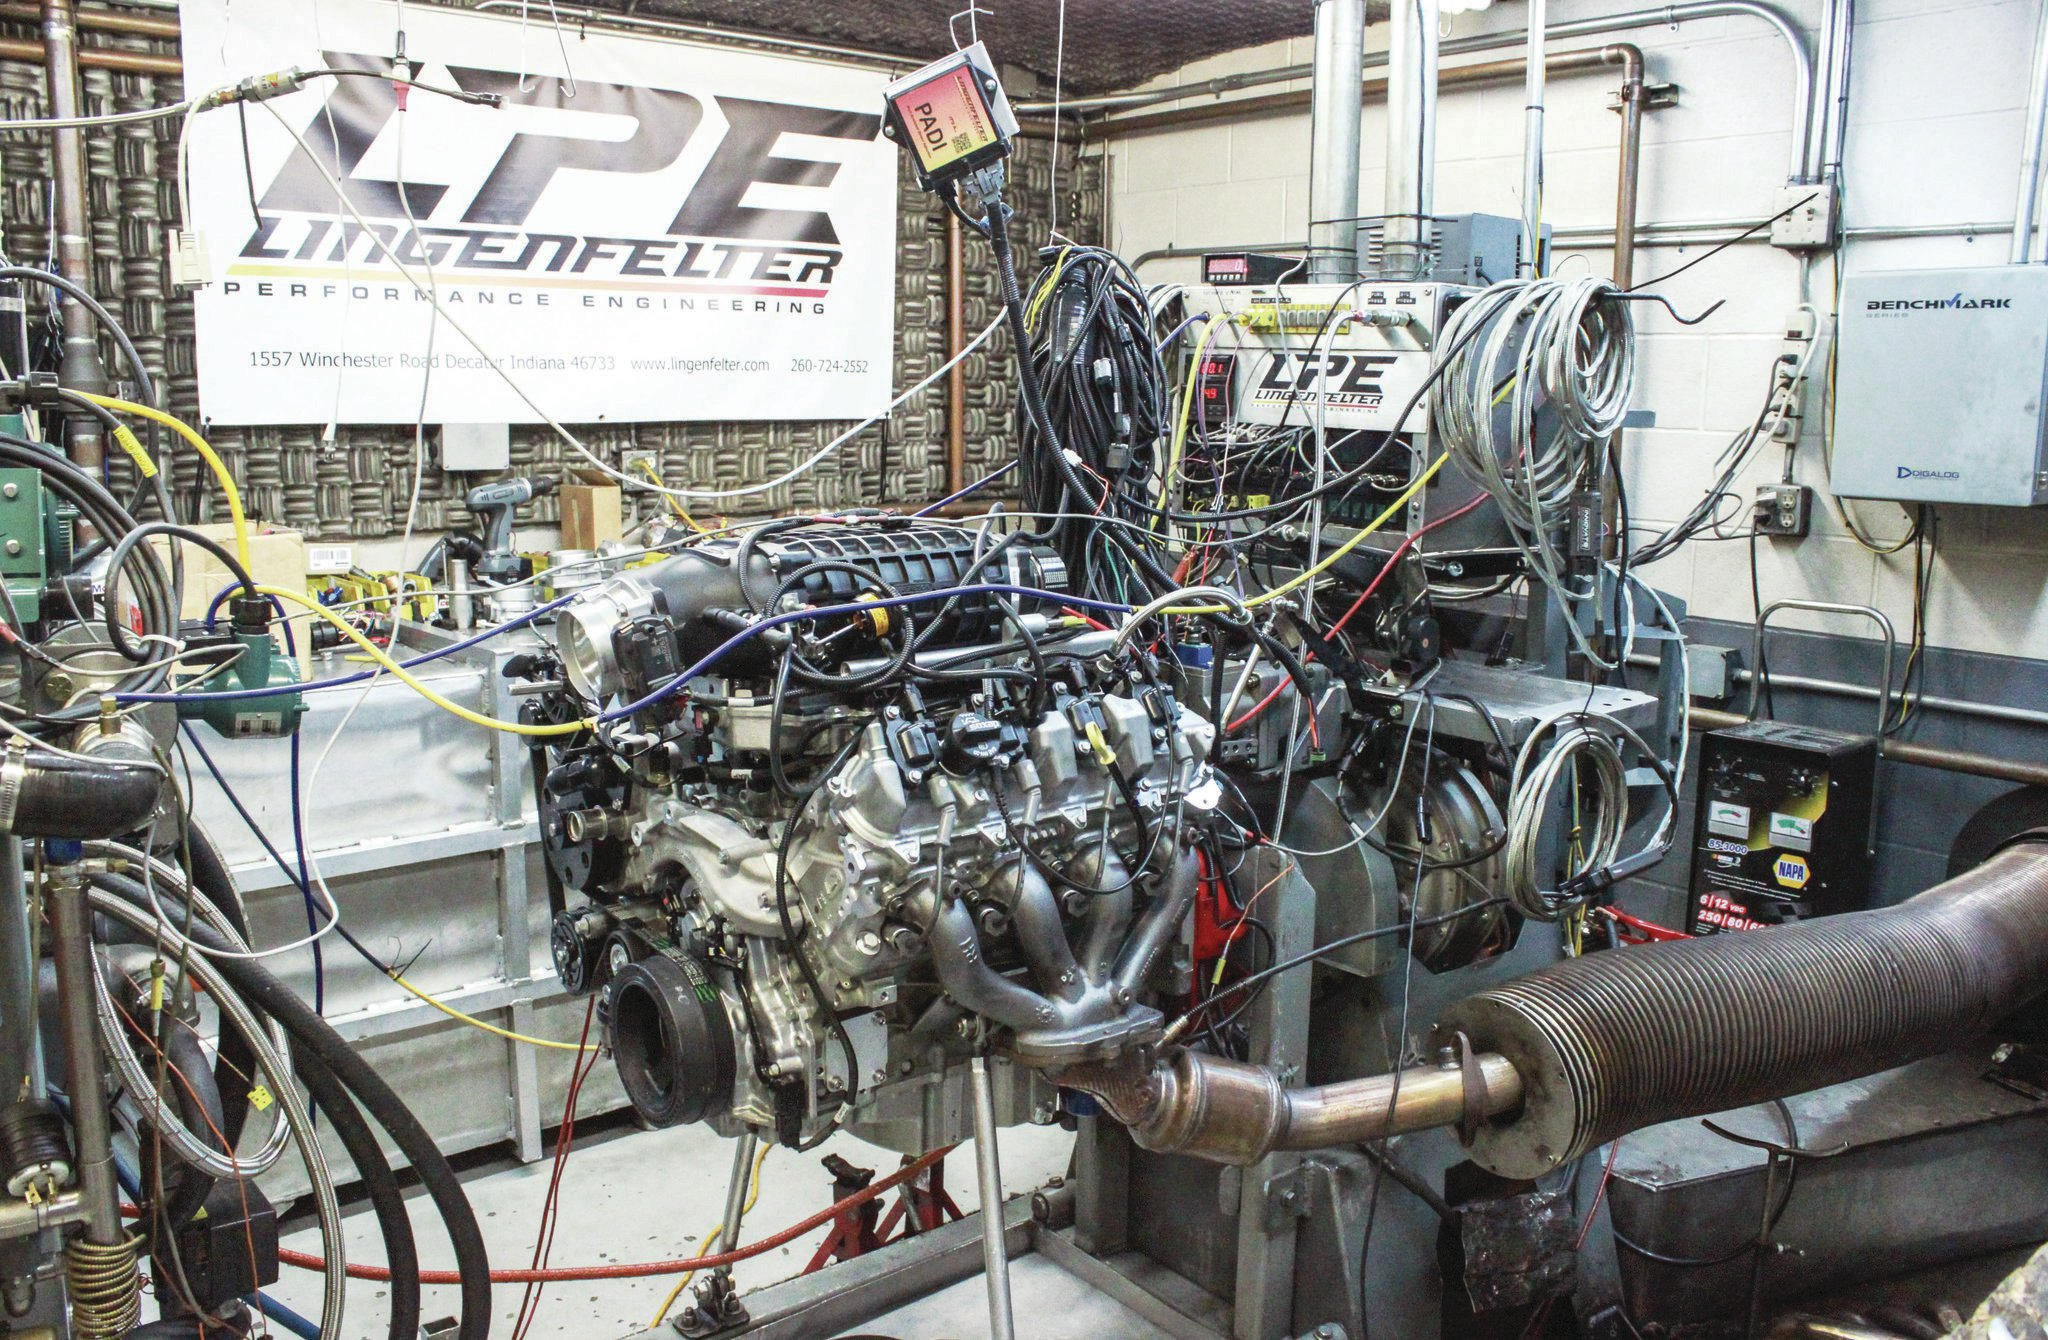 Copeland tells us Lingenfelter engineers have spent hundreds of hours on the dyno testing every practical option for its DI packages and is currently developing the next phase of fueling that will involve custom ground camshafts paired with higher-flow direct-injection pumps.